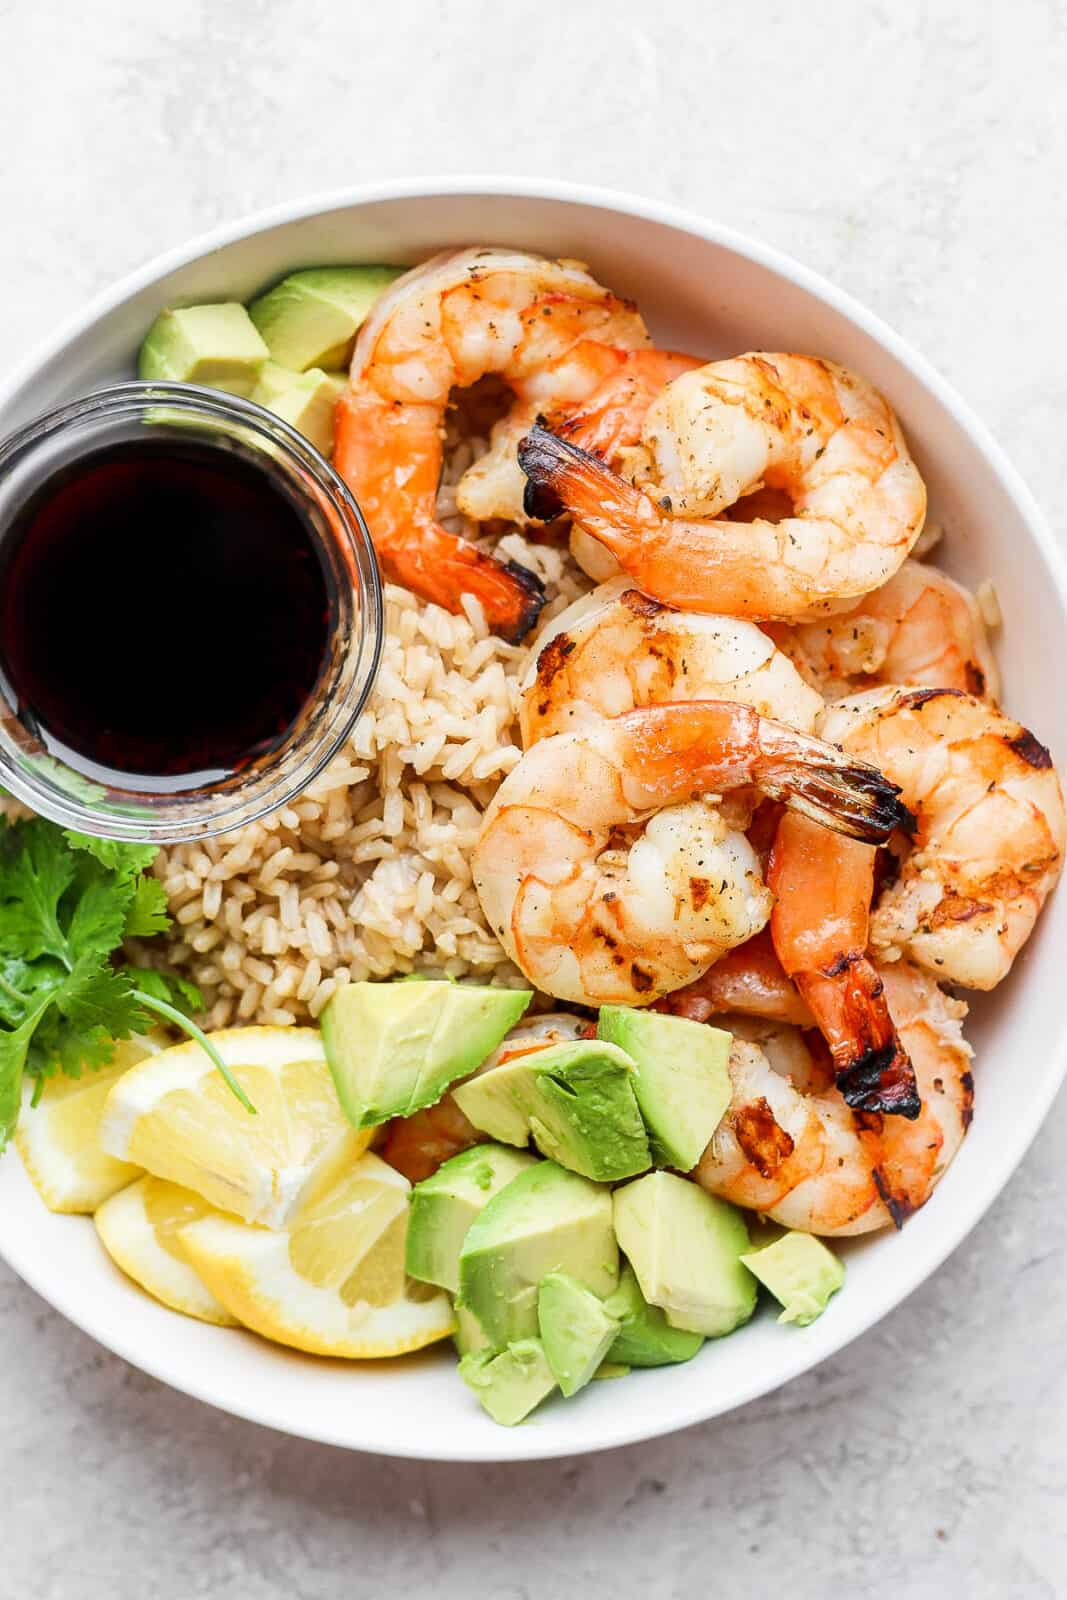 Shrimp rice bowl with a dish of soy sauce.